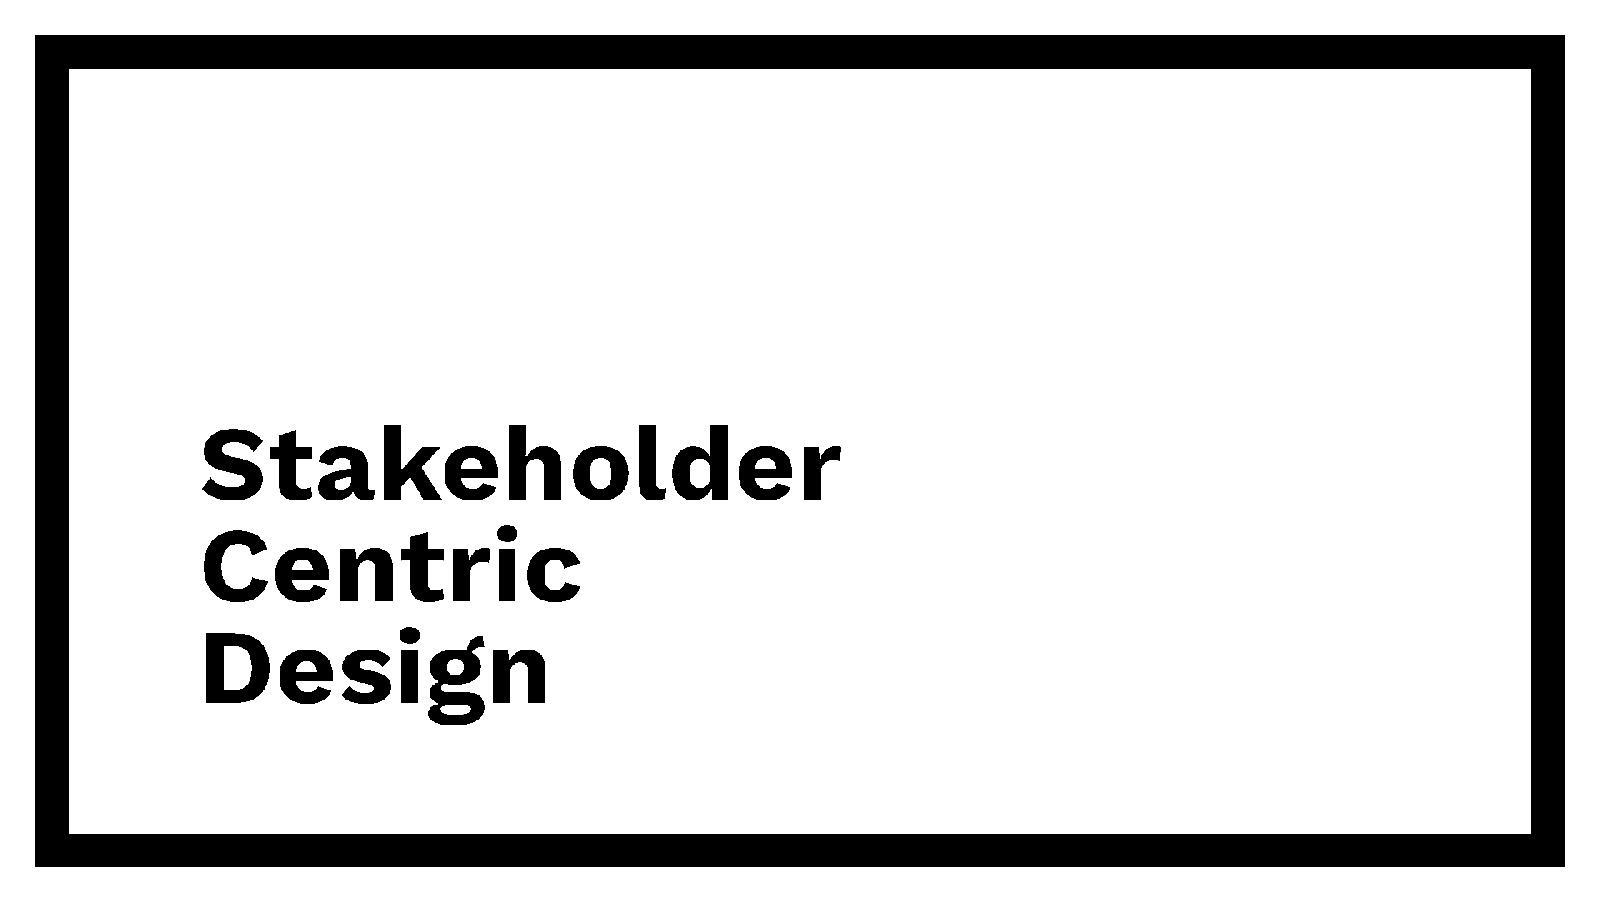 Stakeholder-Centric Design: How retargeting your design process can make you a more influential part of your organisation